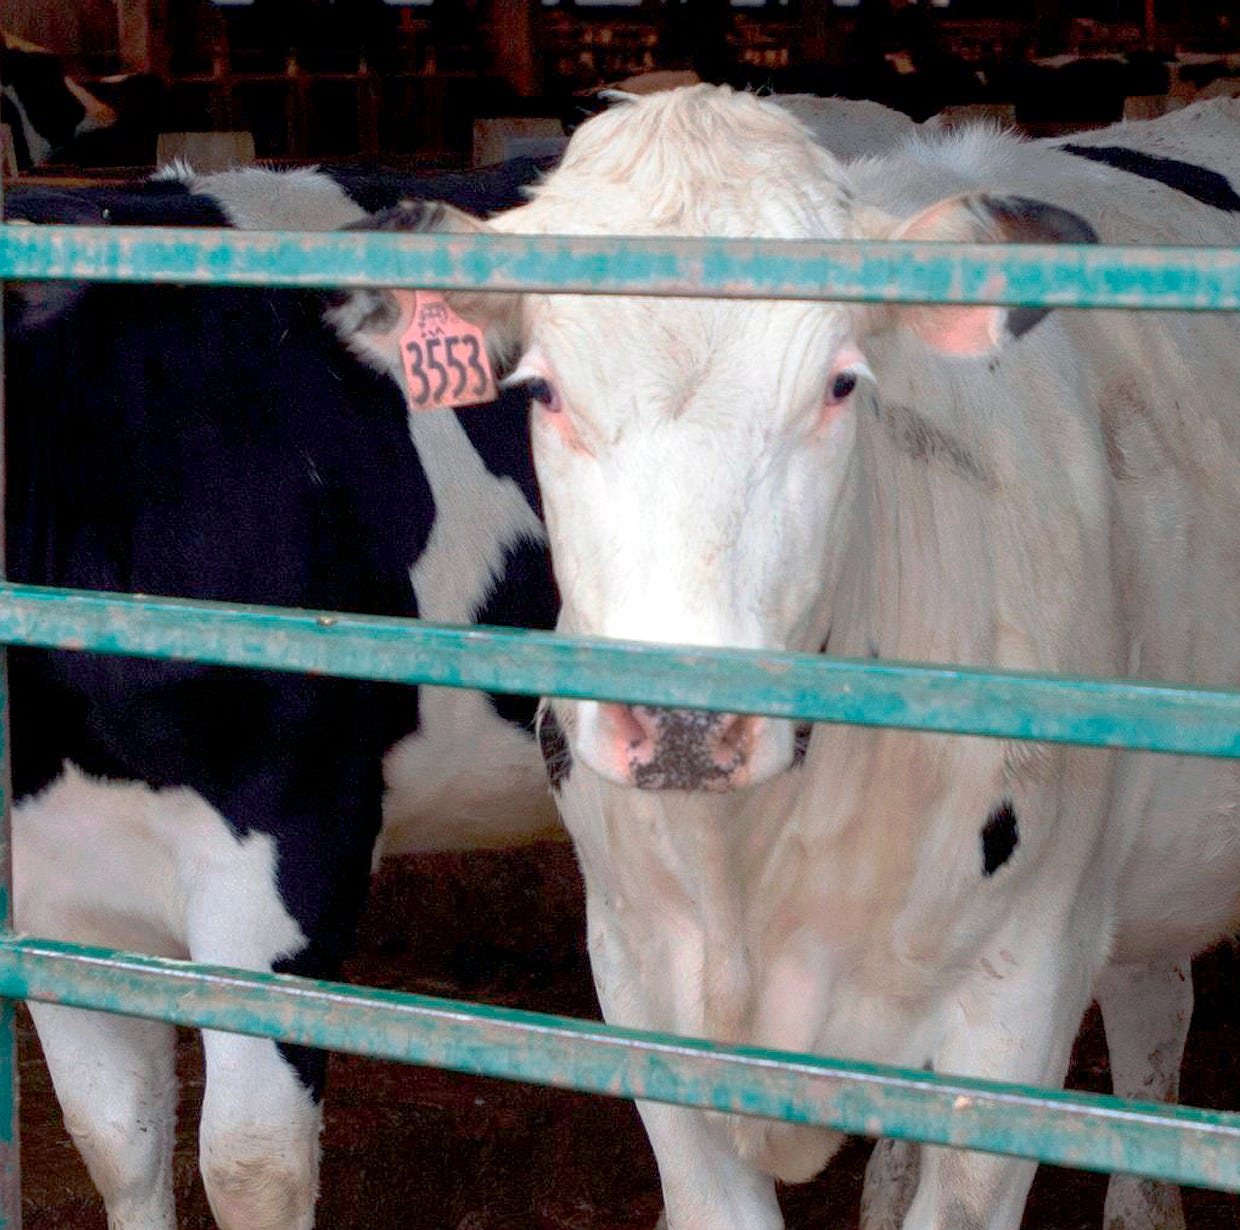 Wisconsin sheriff says stray voltage may have killed cows